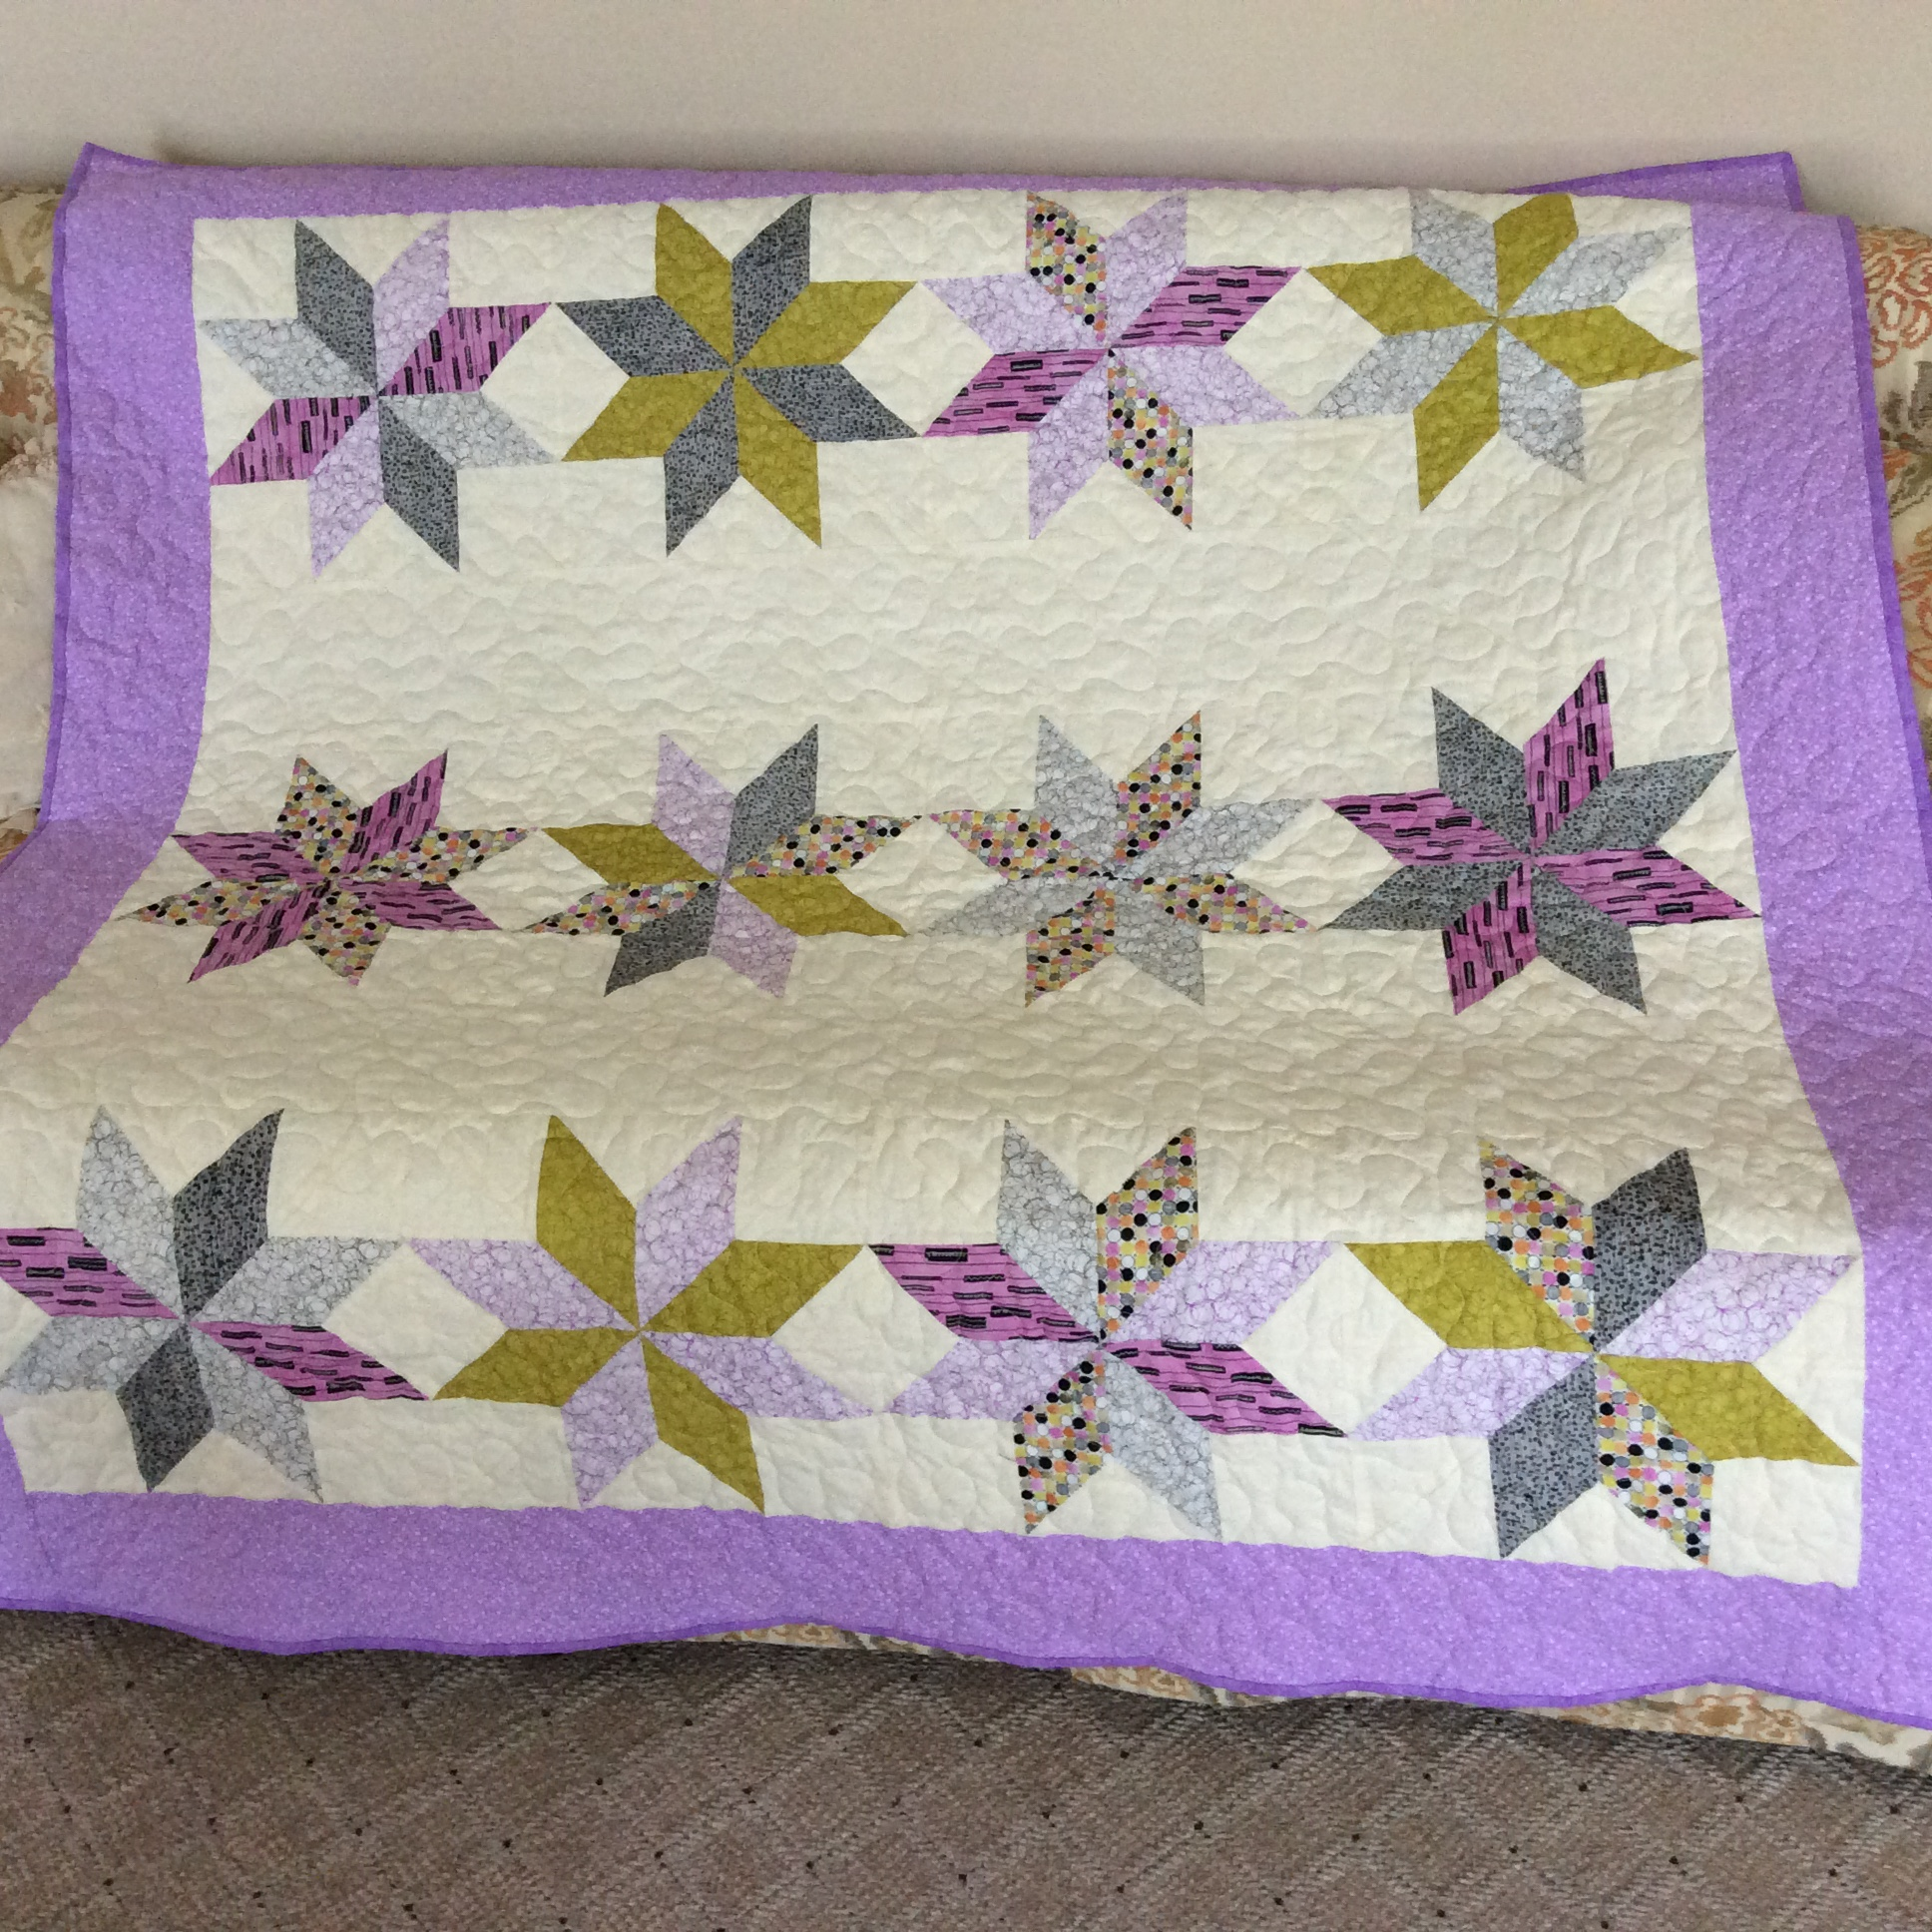 quilts2.JPG image